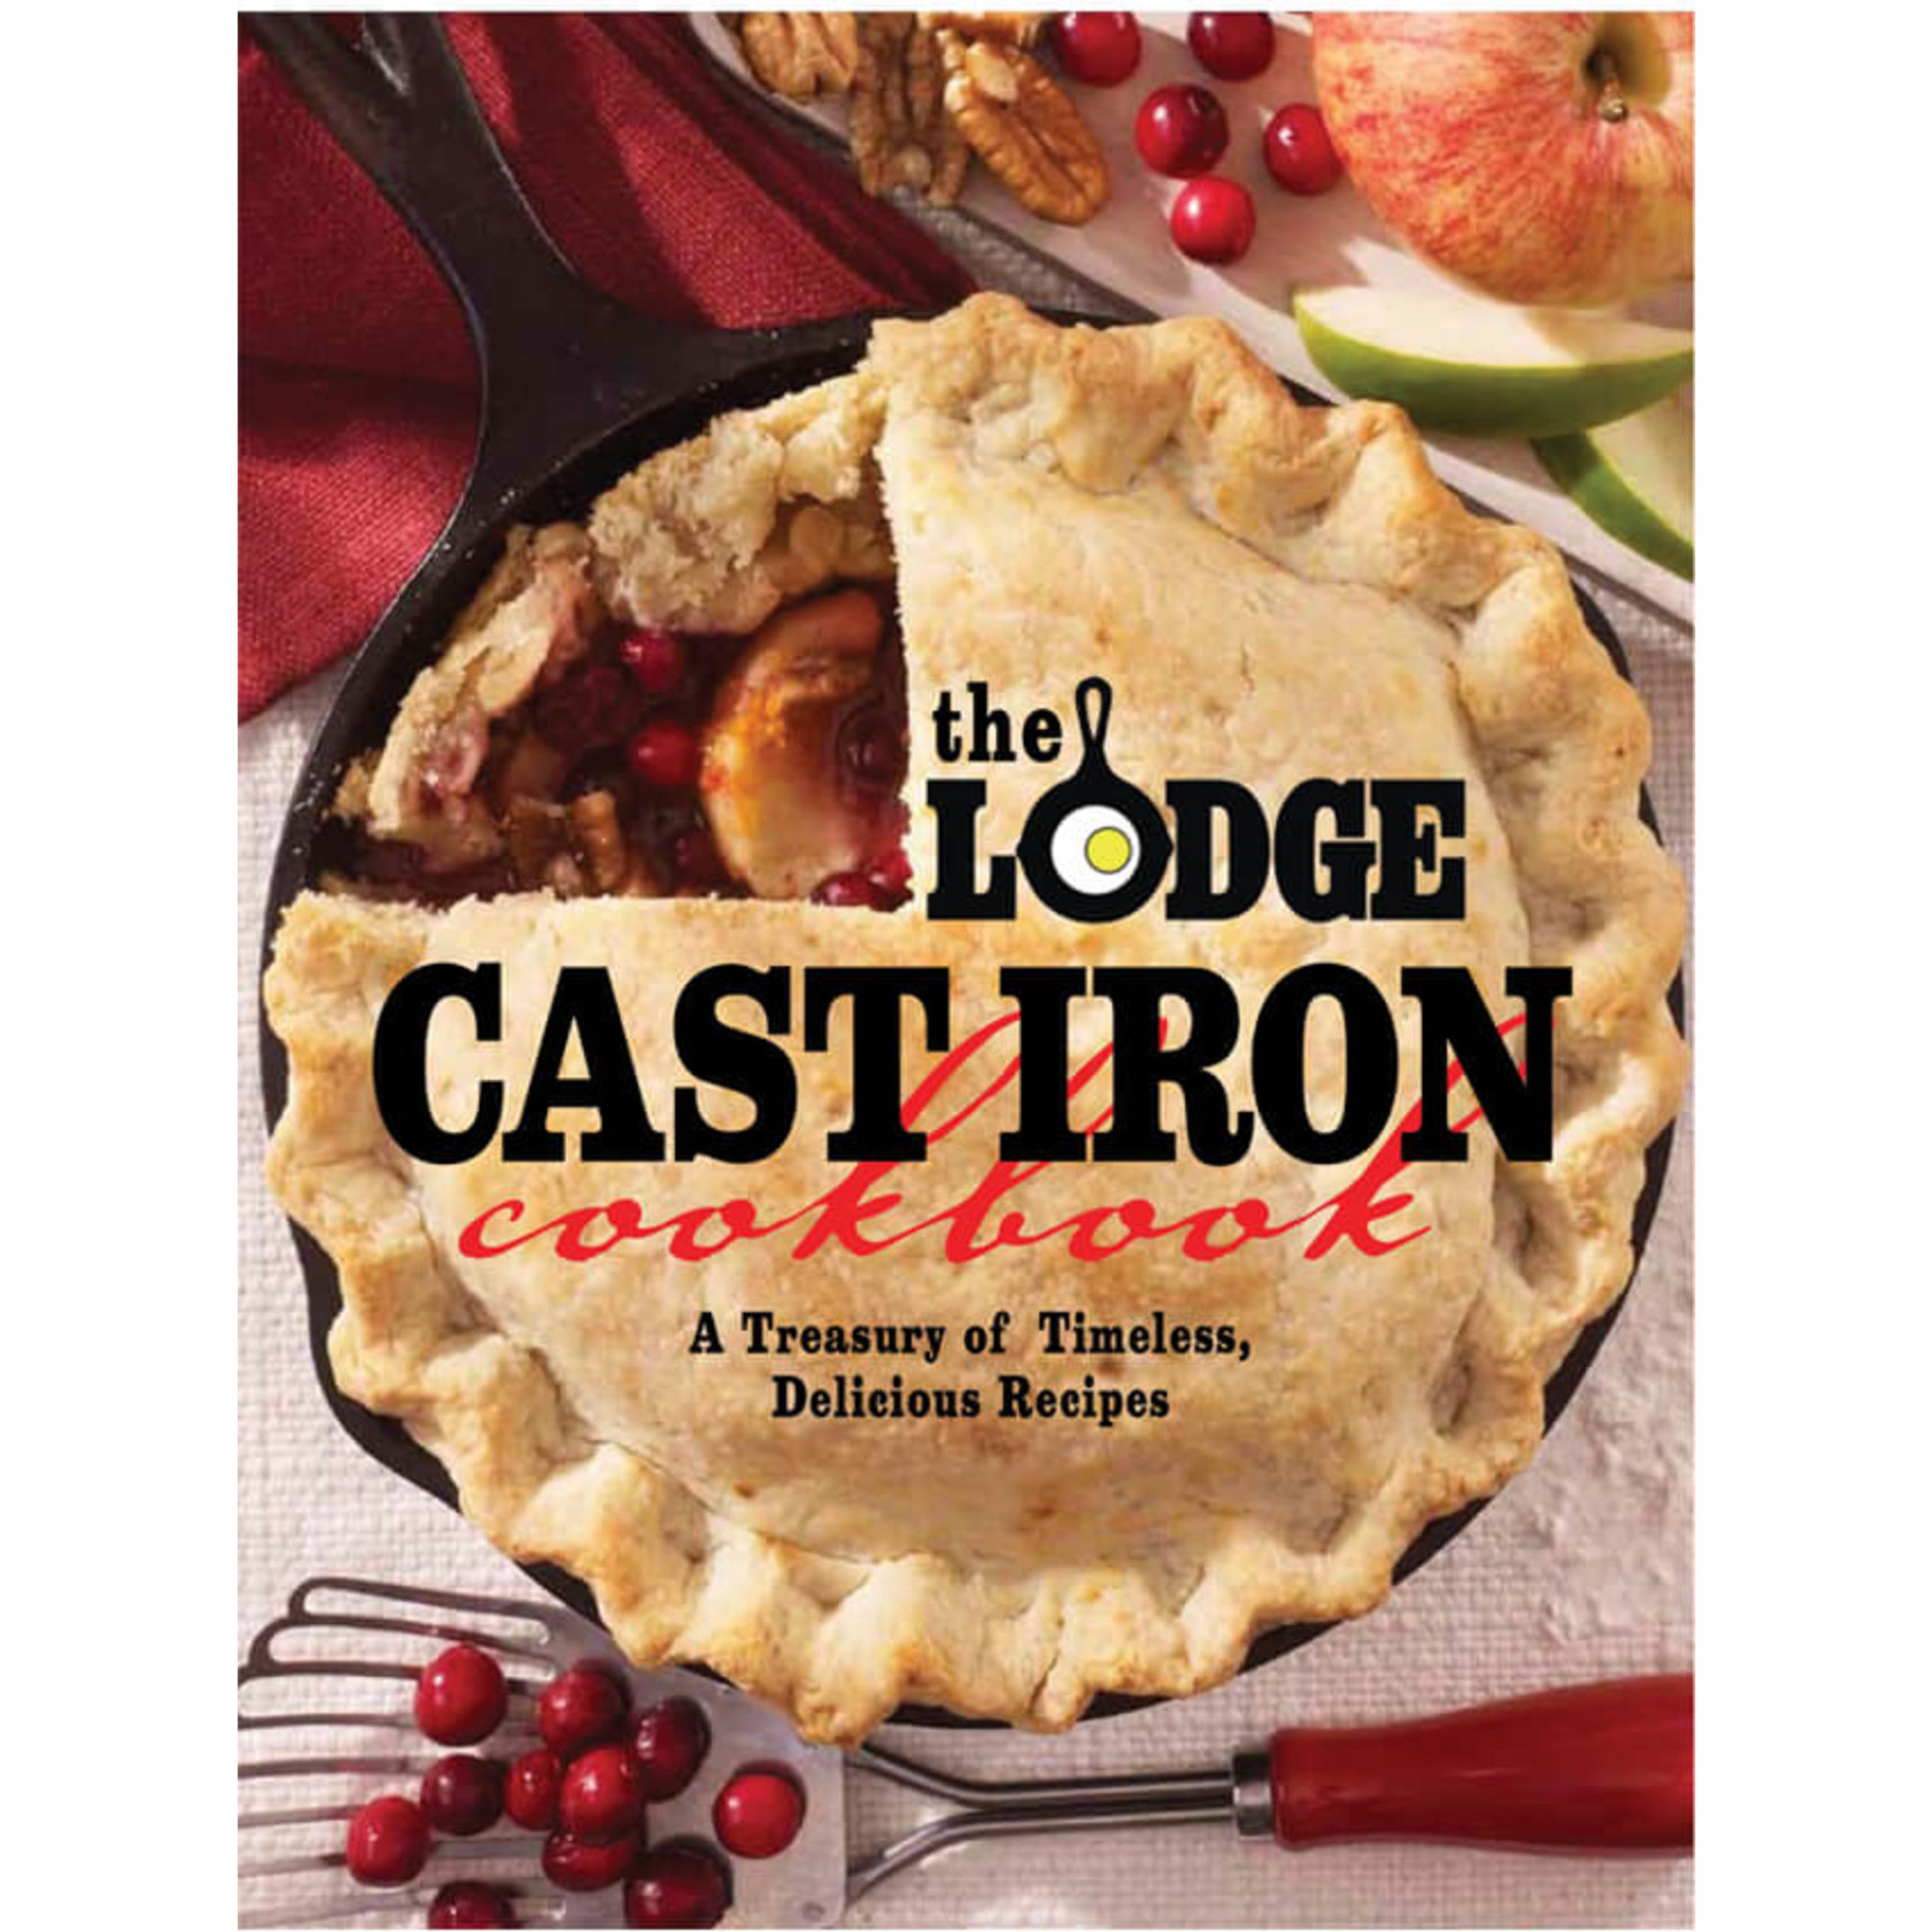 Lodge – The Cast Iron Cookbook: A Treasury of Timeless Delicious Recipes